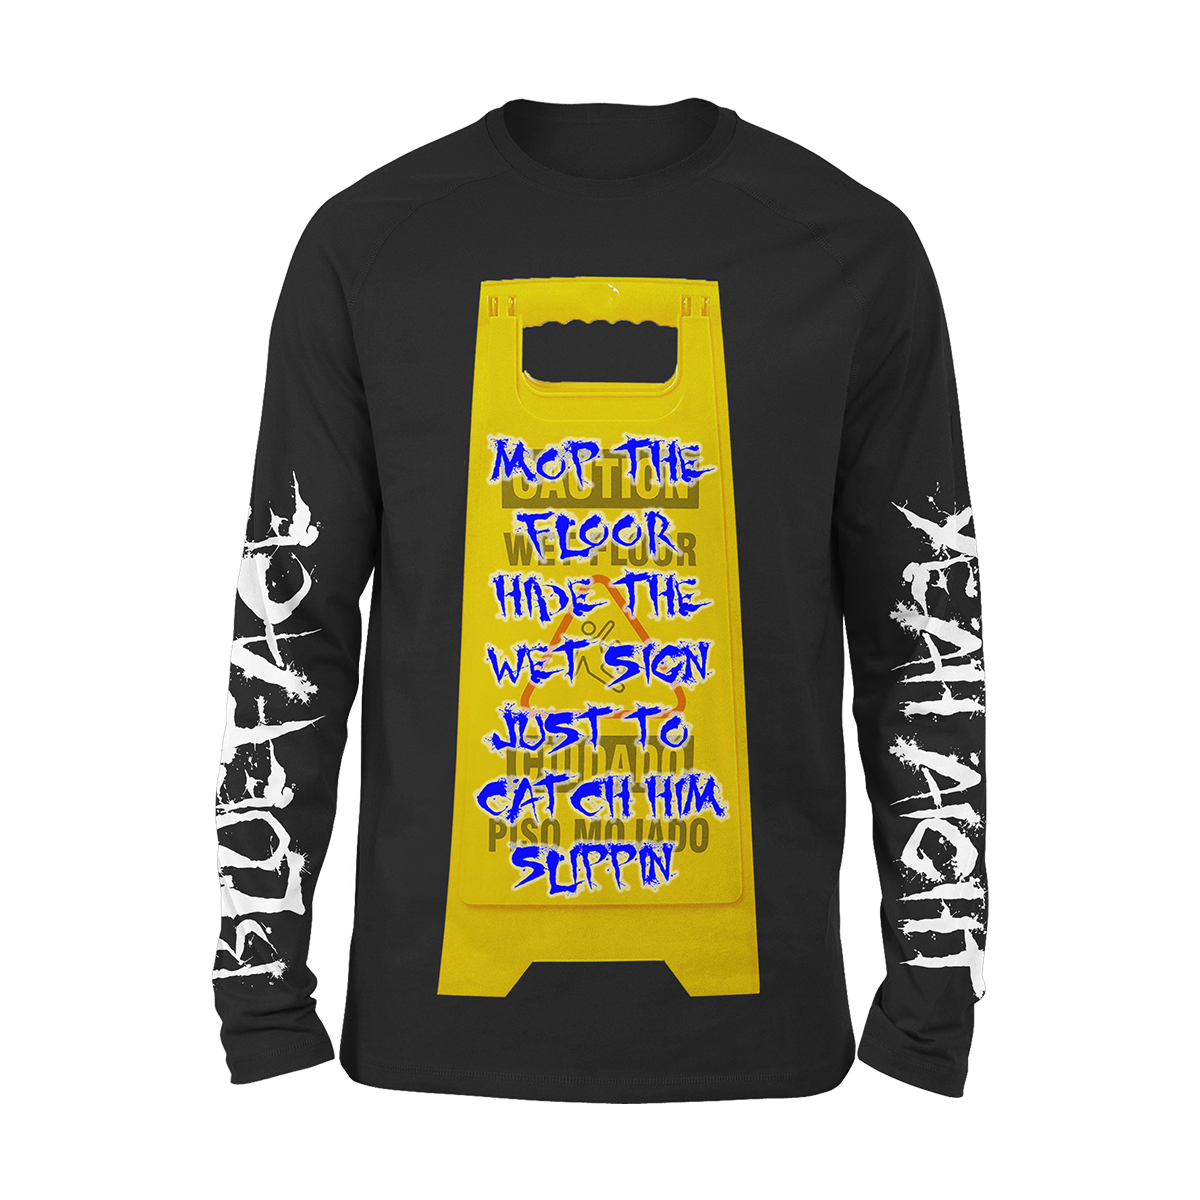 Caution Sign Long Sleeve Tee